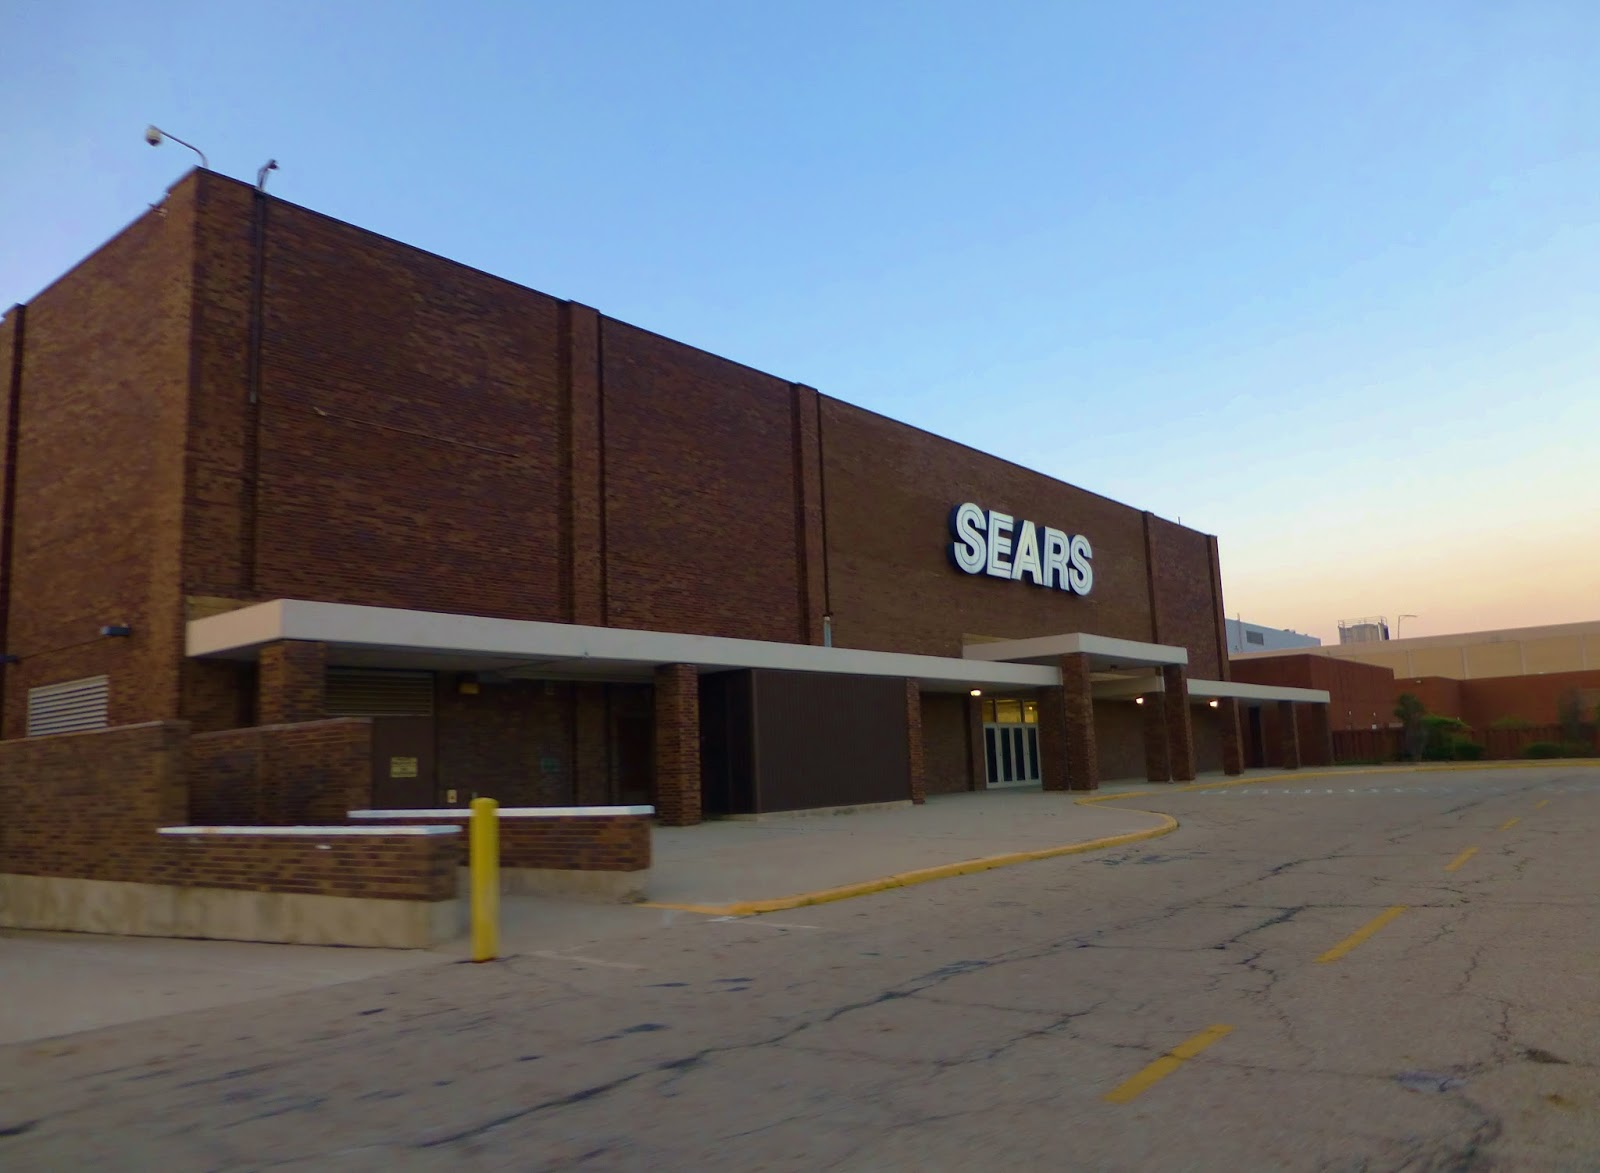 Dec 06, · I used to be a loyal customer of Sears Auto and it has always been my